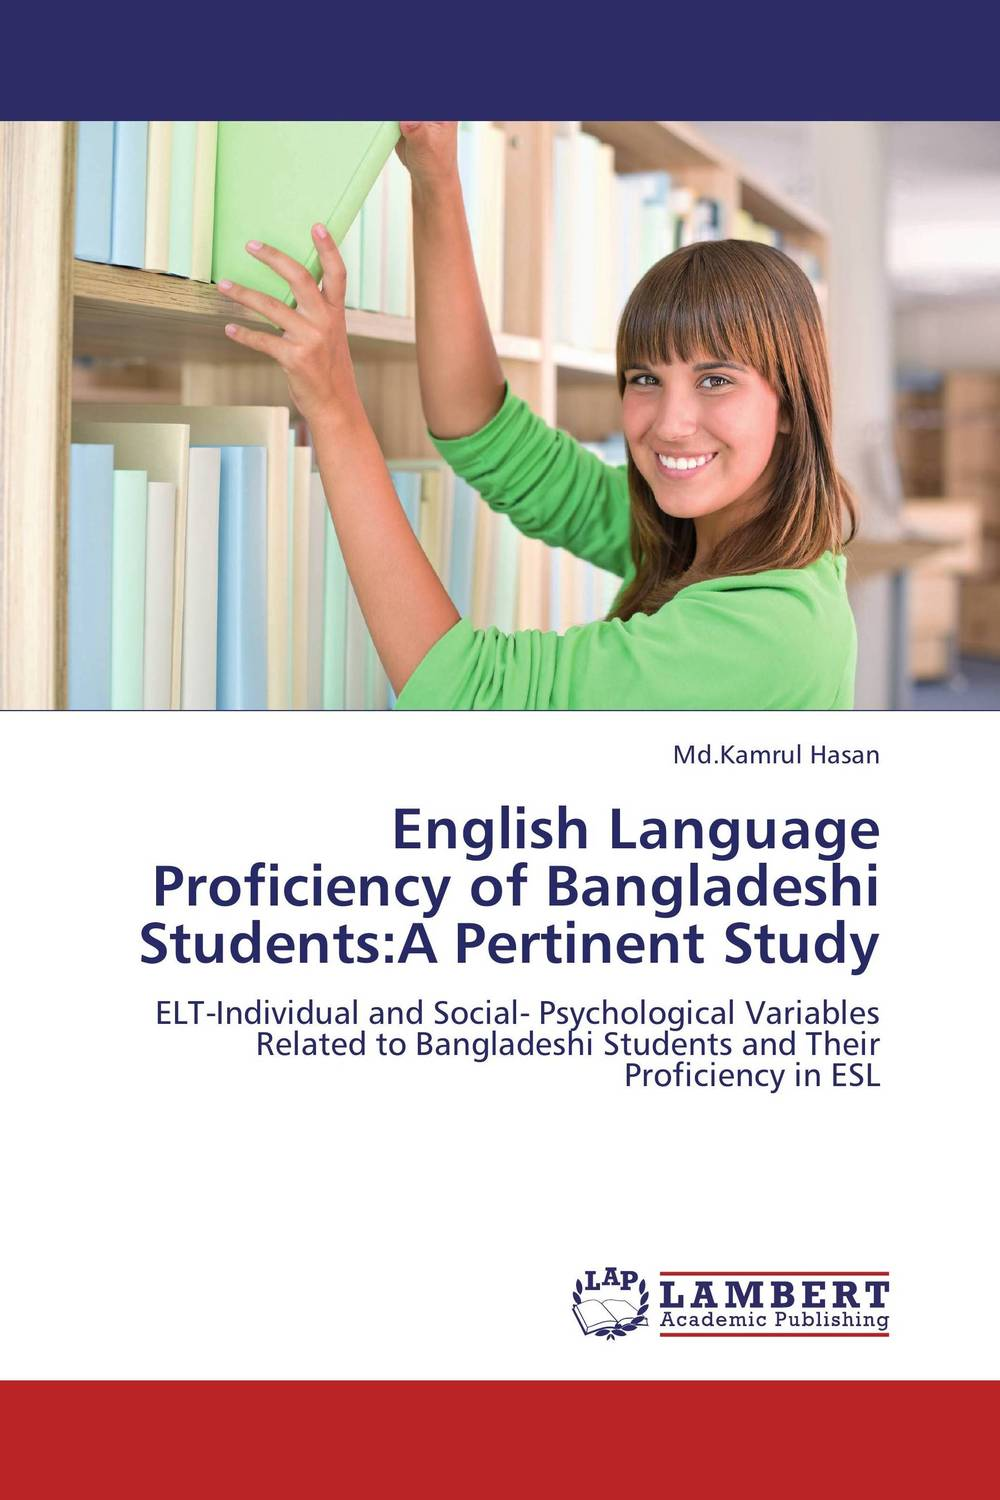 English Language Proficiency of Bangladeshi Students:A Pertinent Study language change and lexical variation in youth language